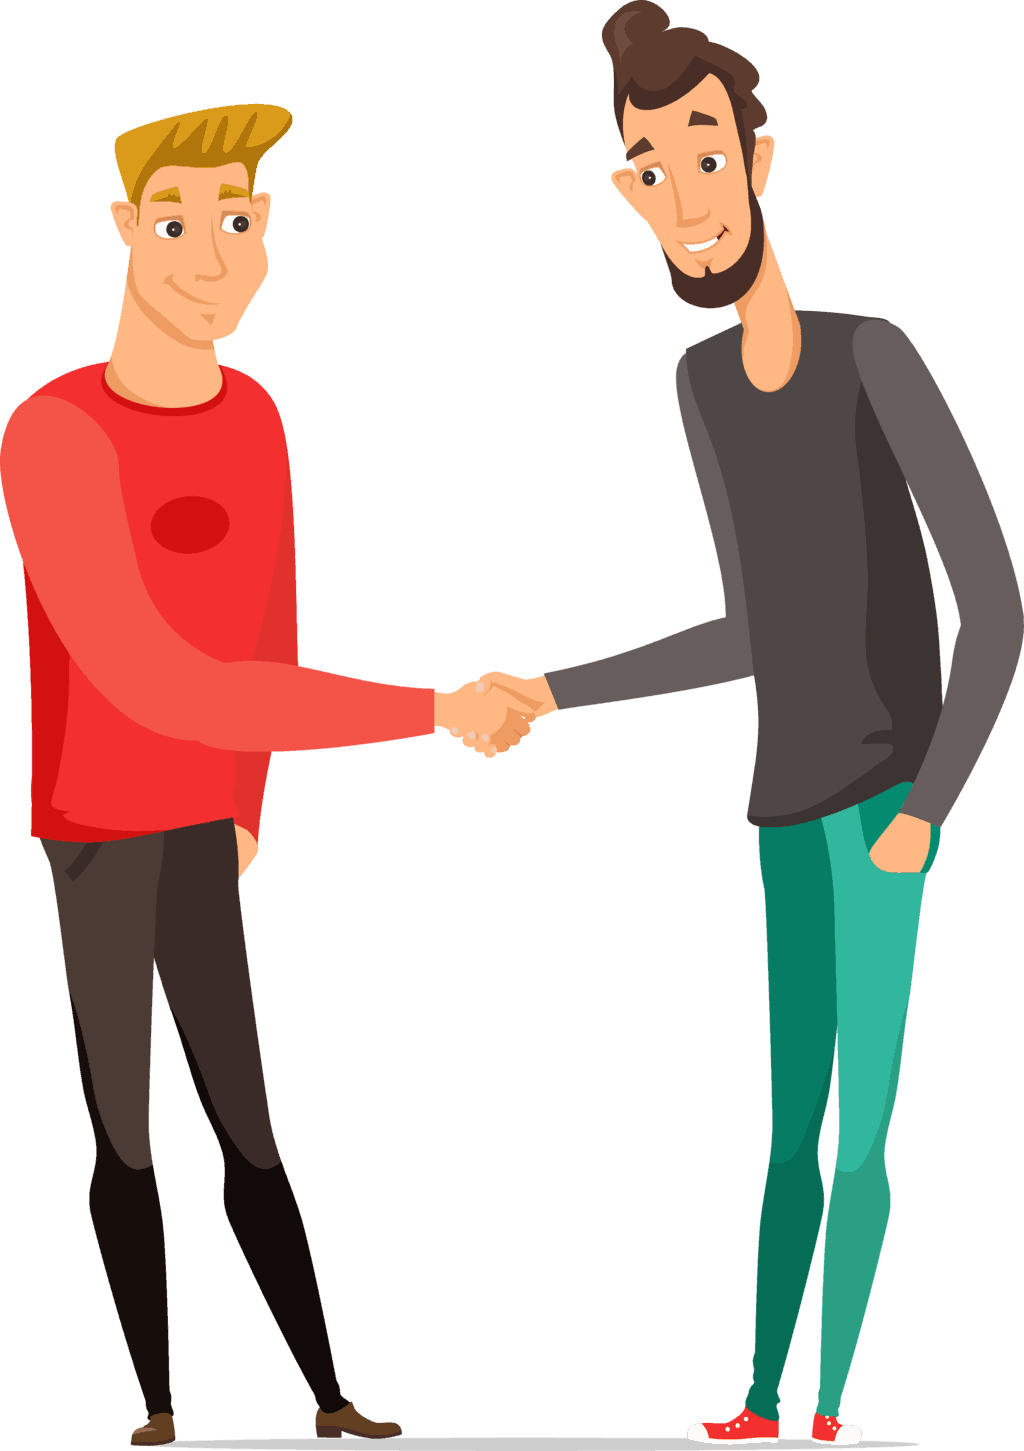 Illustration of a young blonde man in a red shirt shaking hands with a tall black-haired bearded man in a black shirt